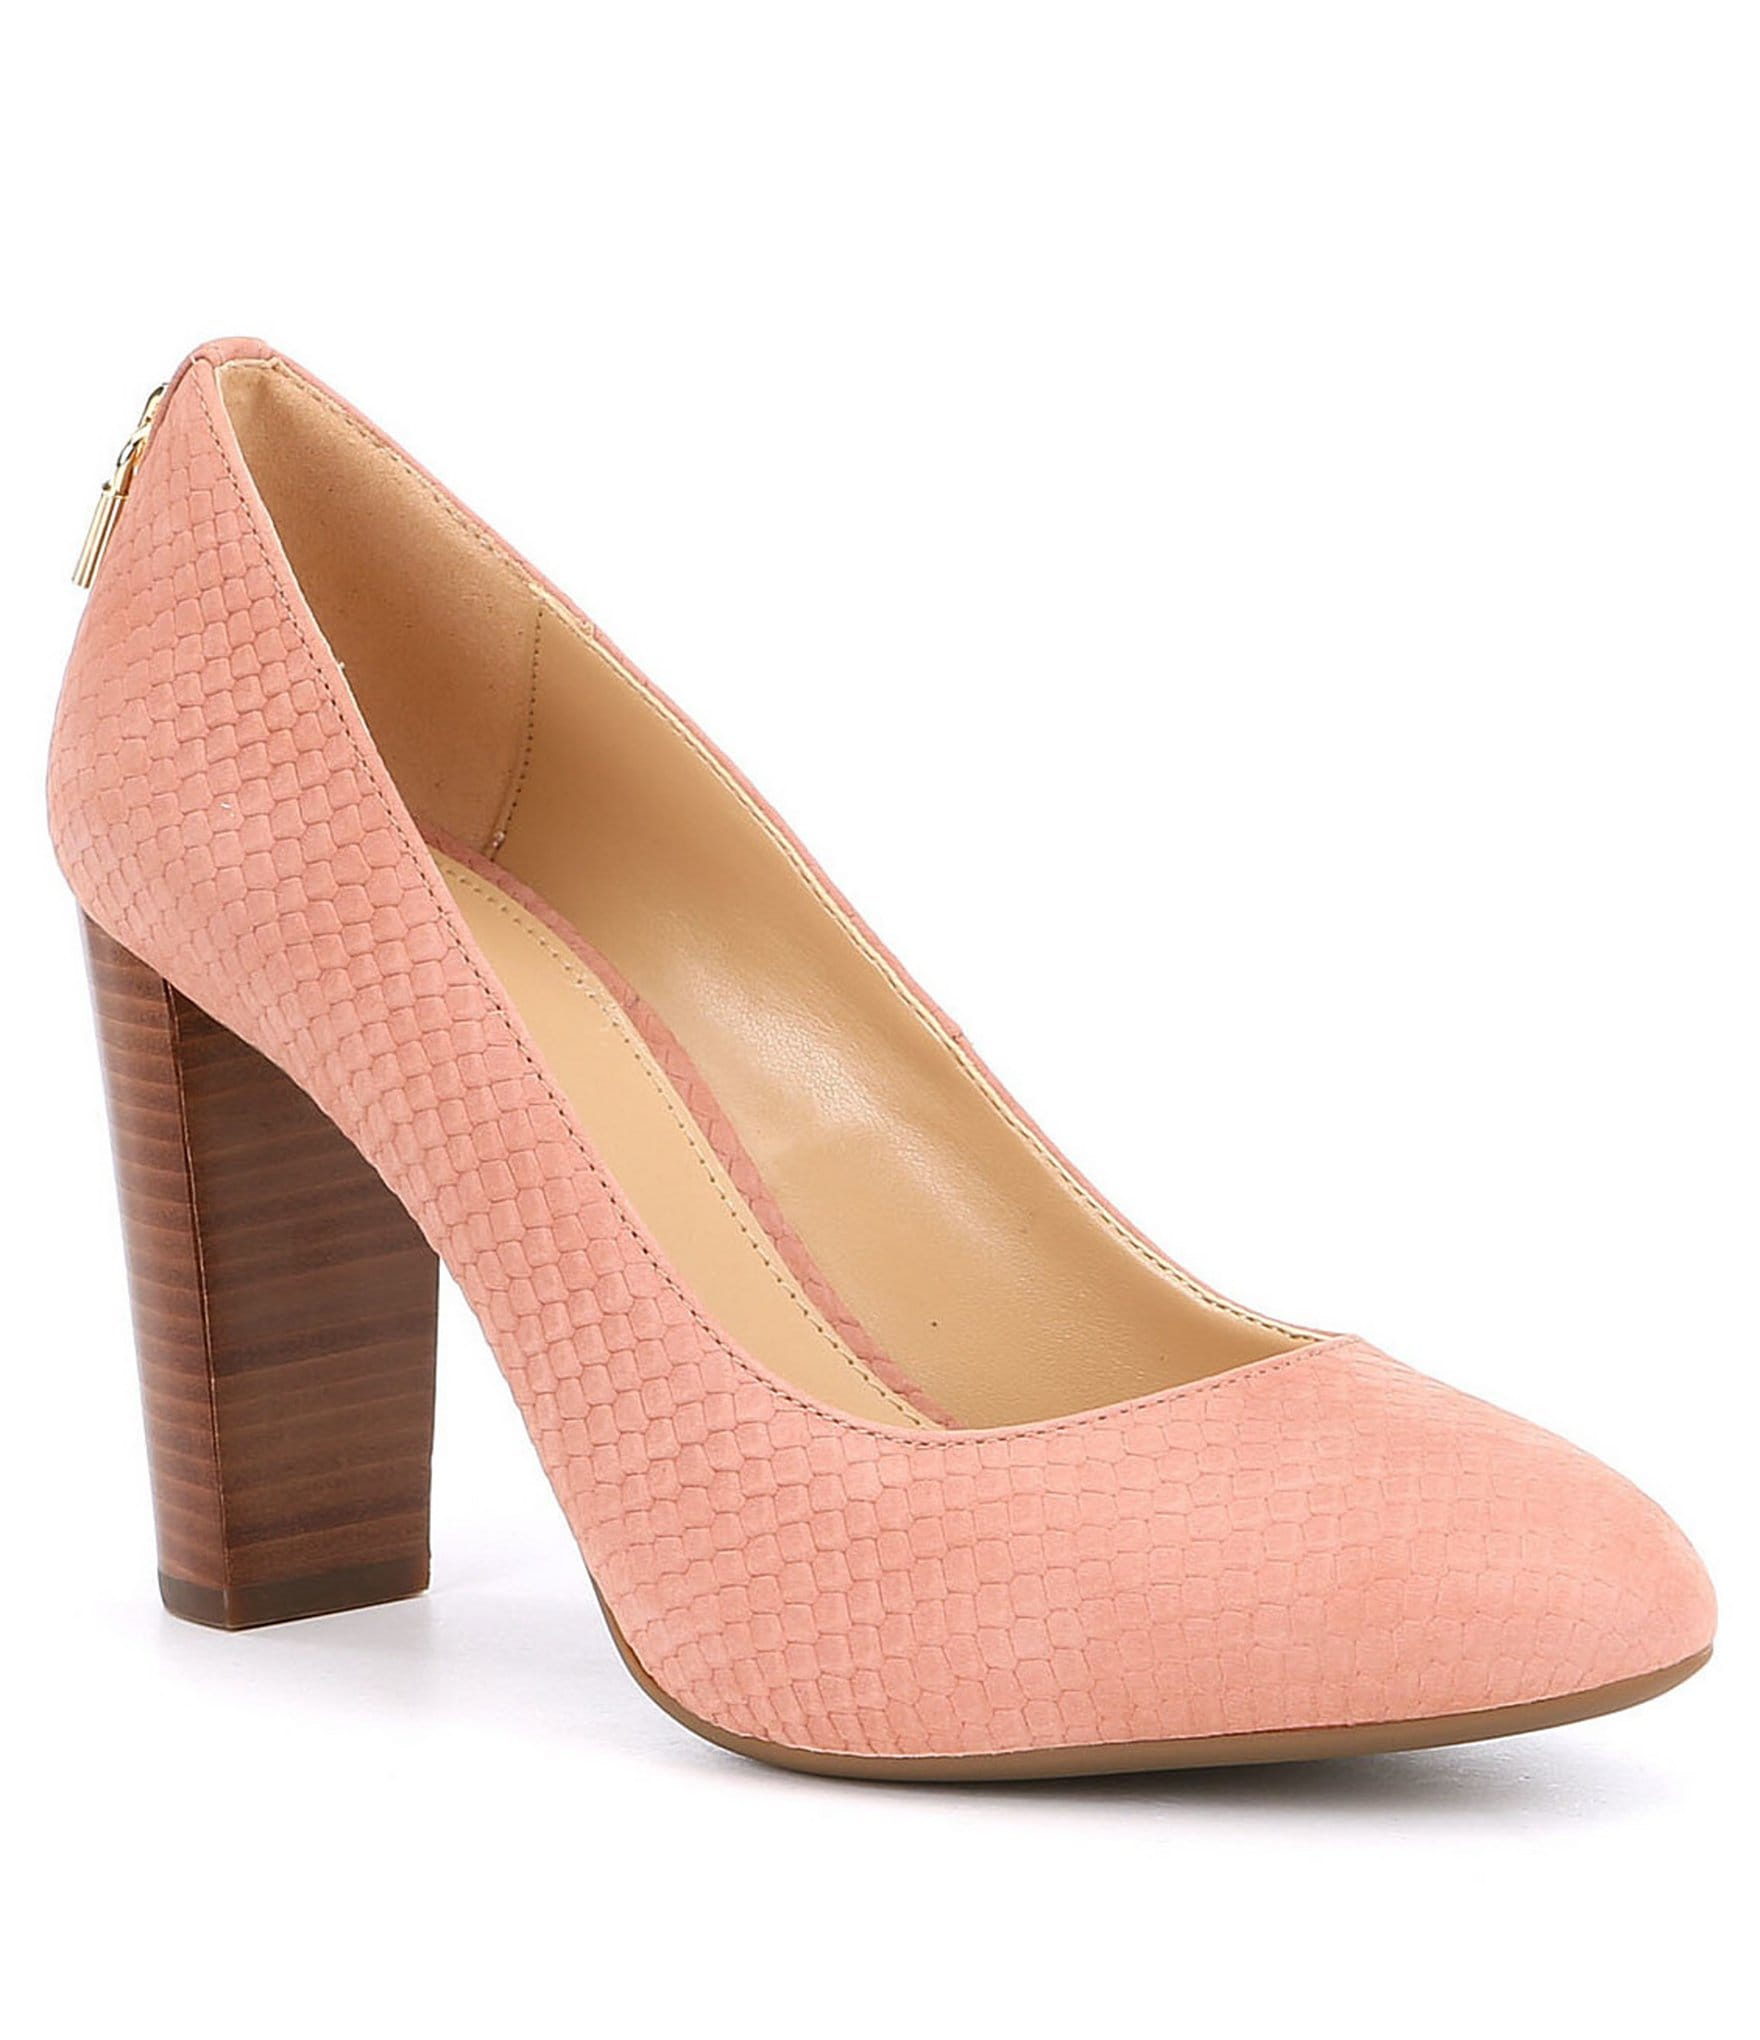 360a6951e51b pink michael kors shoes sale   OFF62% Discounted